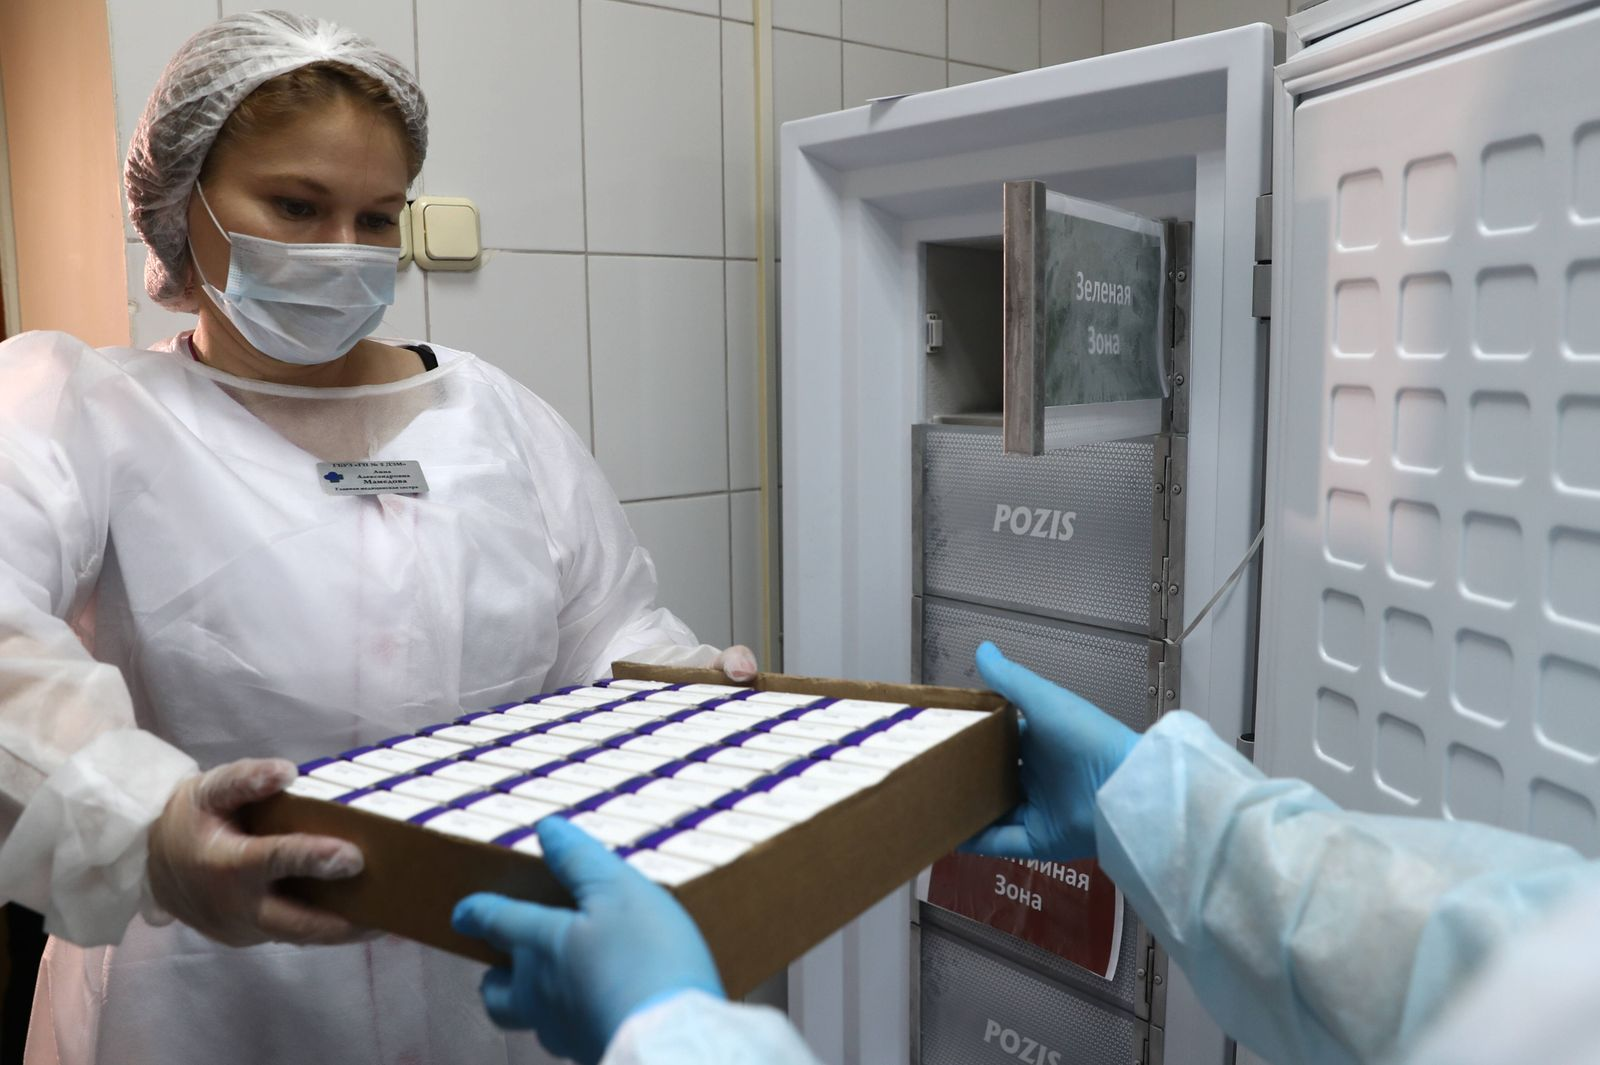 MOSCOW, RUSSIA - SEPTEMBER 4, 2020: Medical staff with newly delivered boxes containing COVID-19 vaccine in a cold room